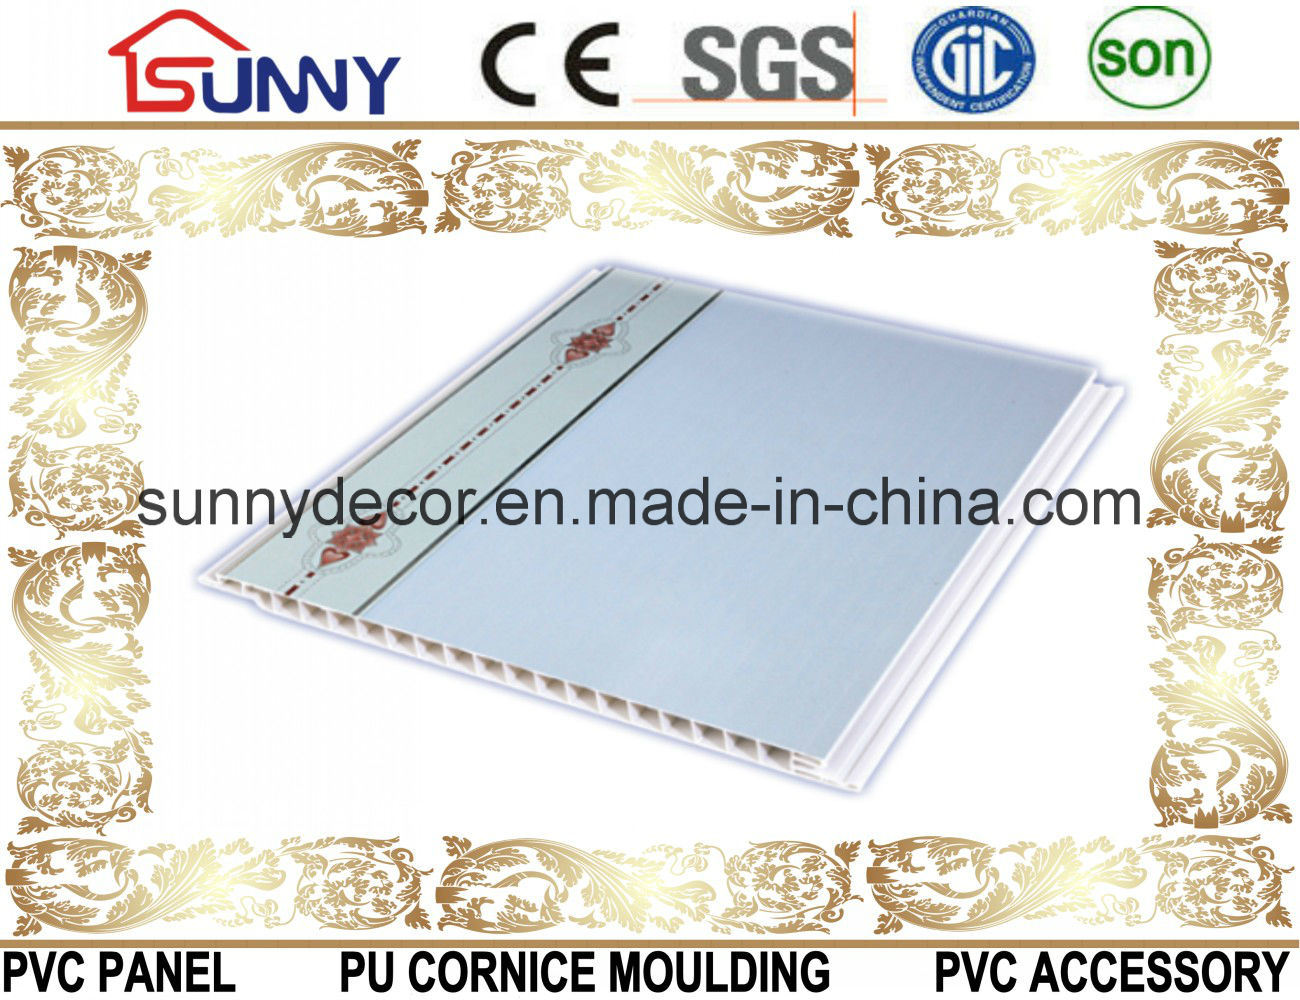 2016 Hot Sell The Latest Design Ceiling of PVC Panel-PVC Wall Panel